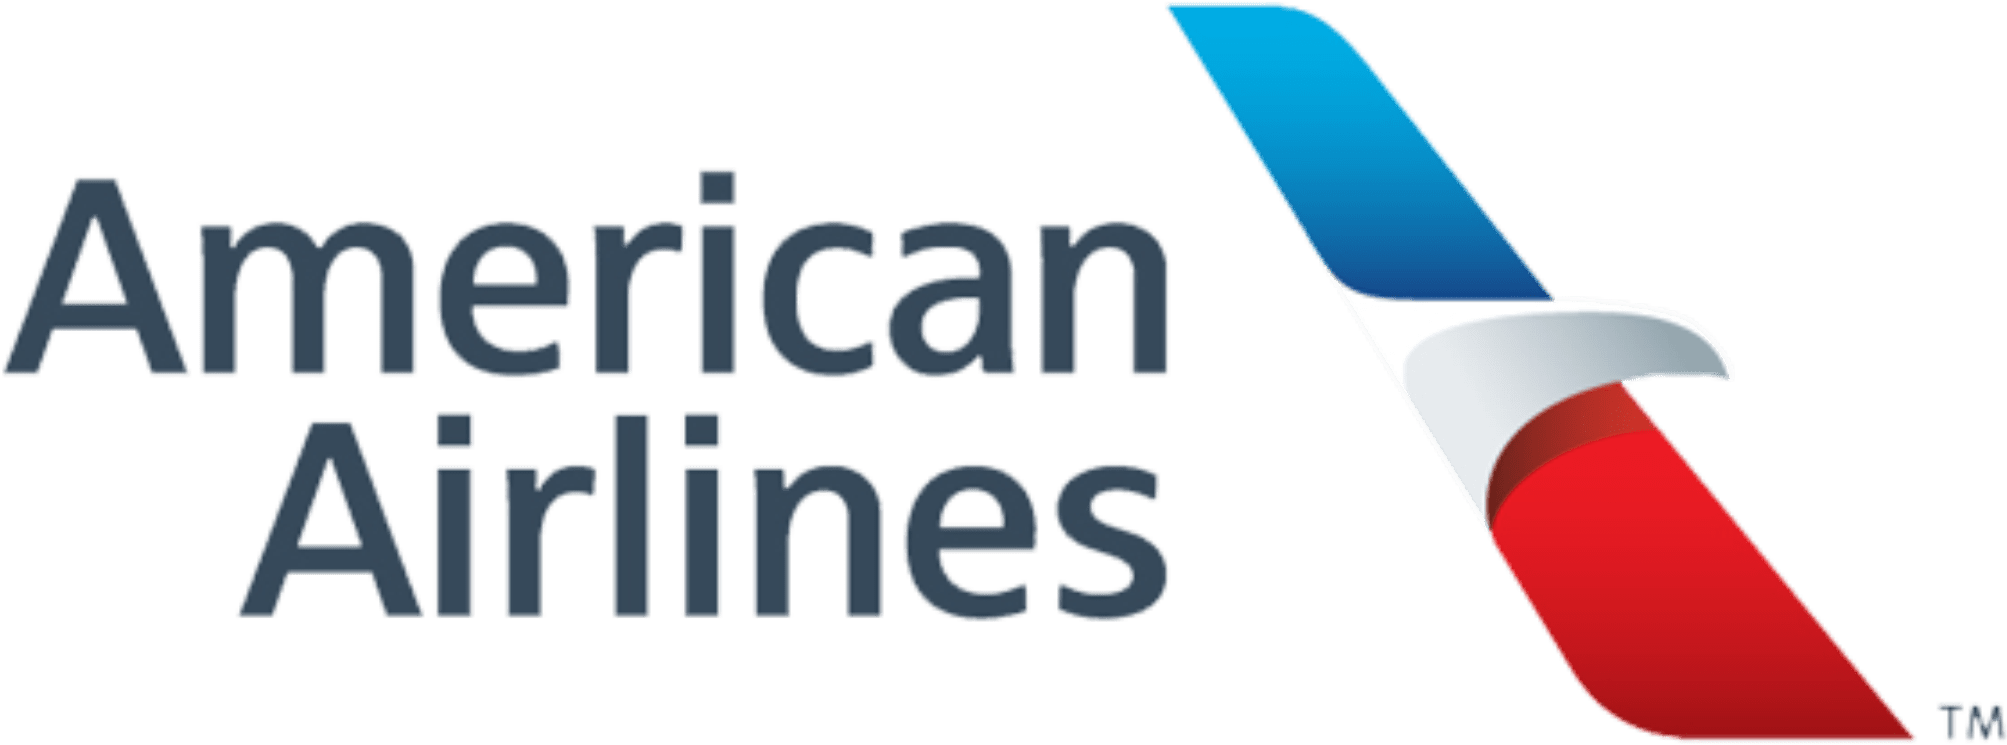 American Airlines picture